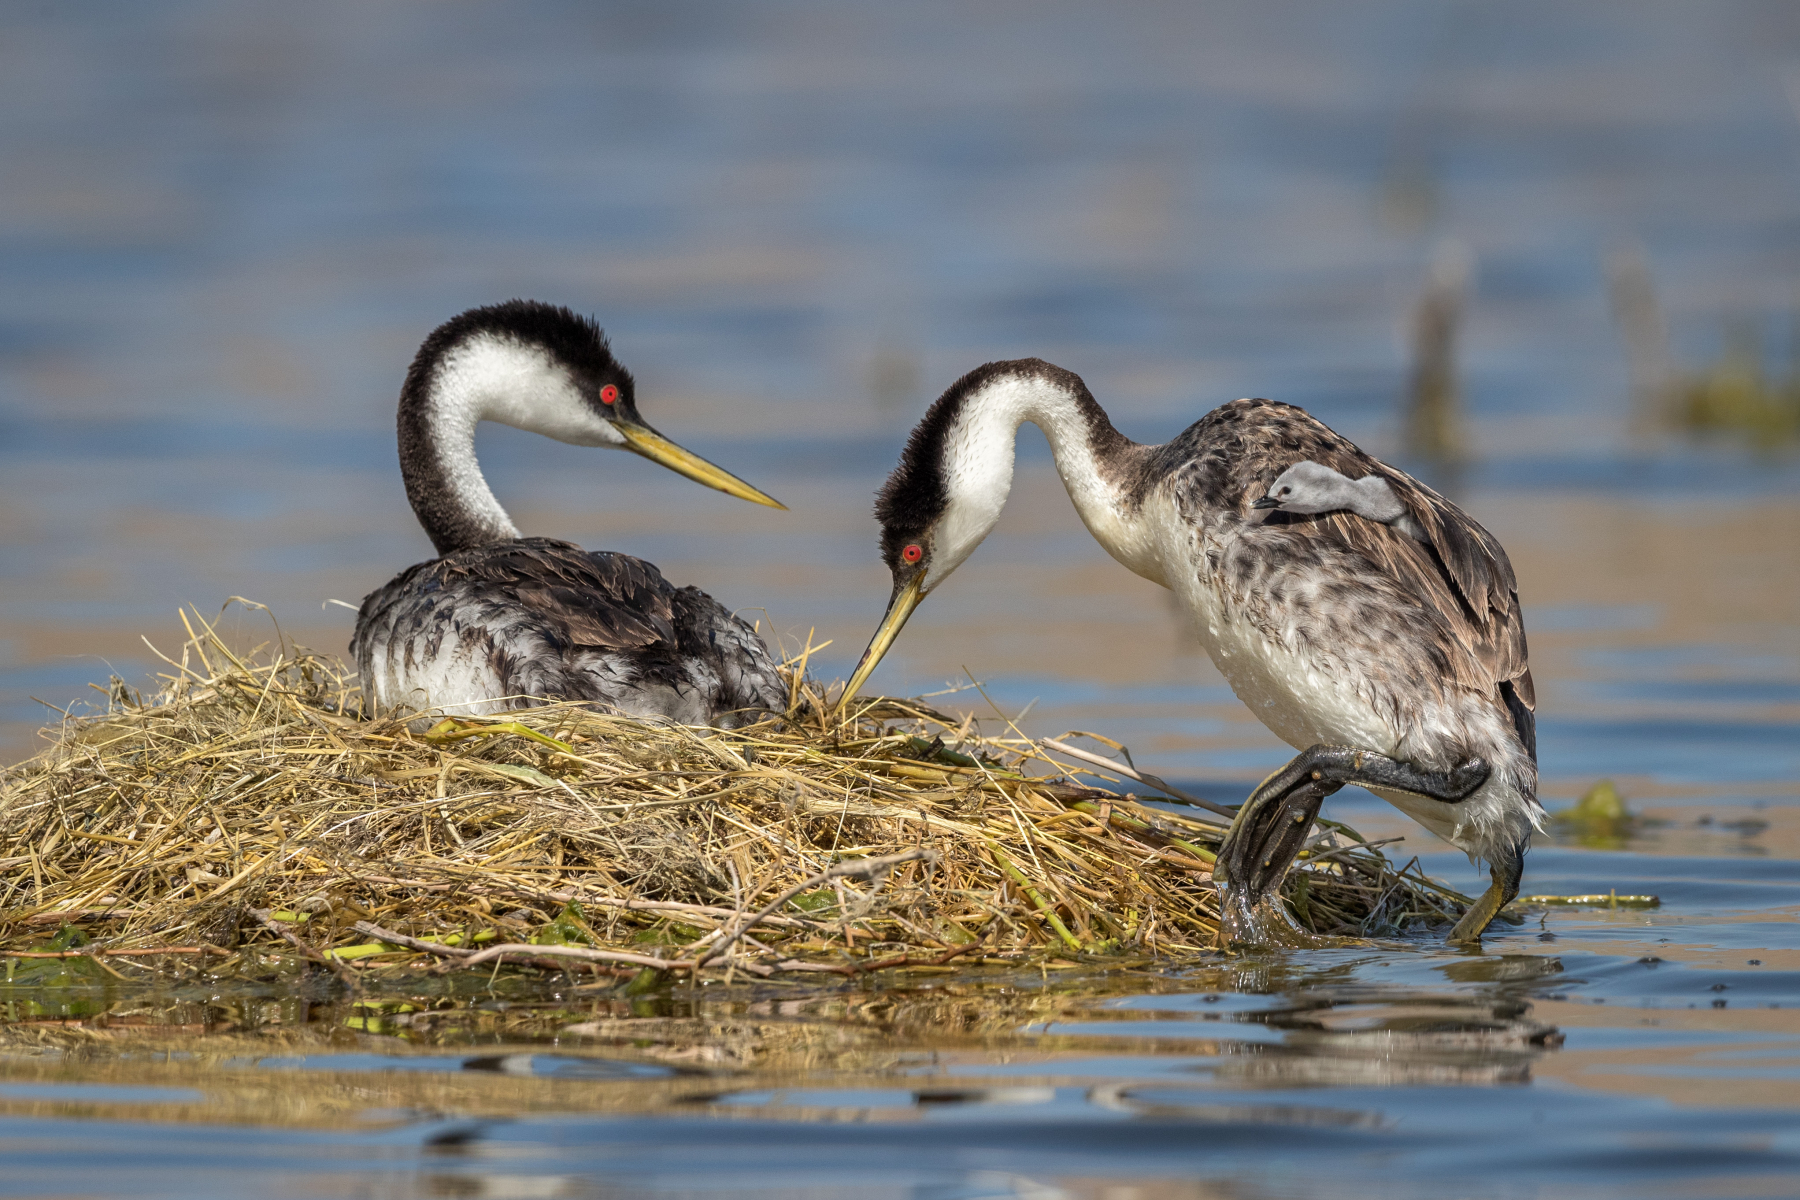 Second place: Western Grebes